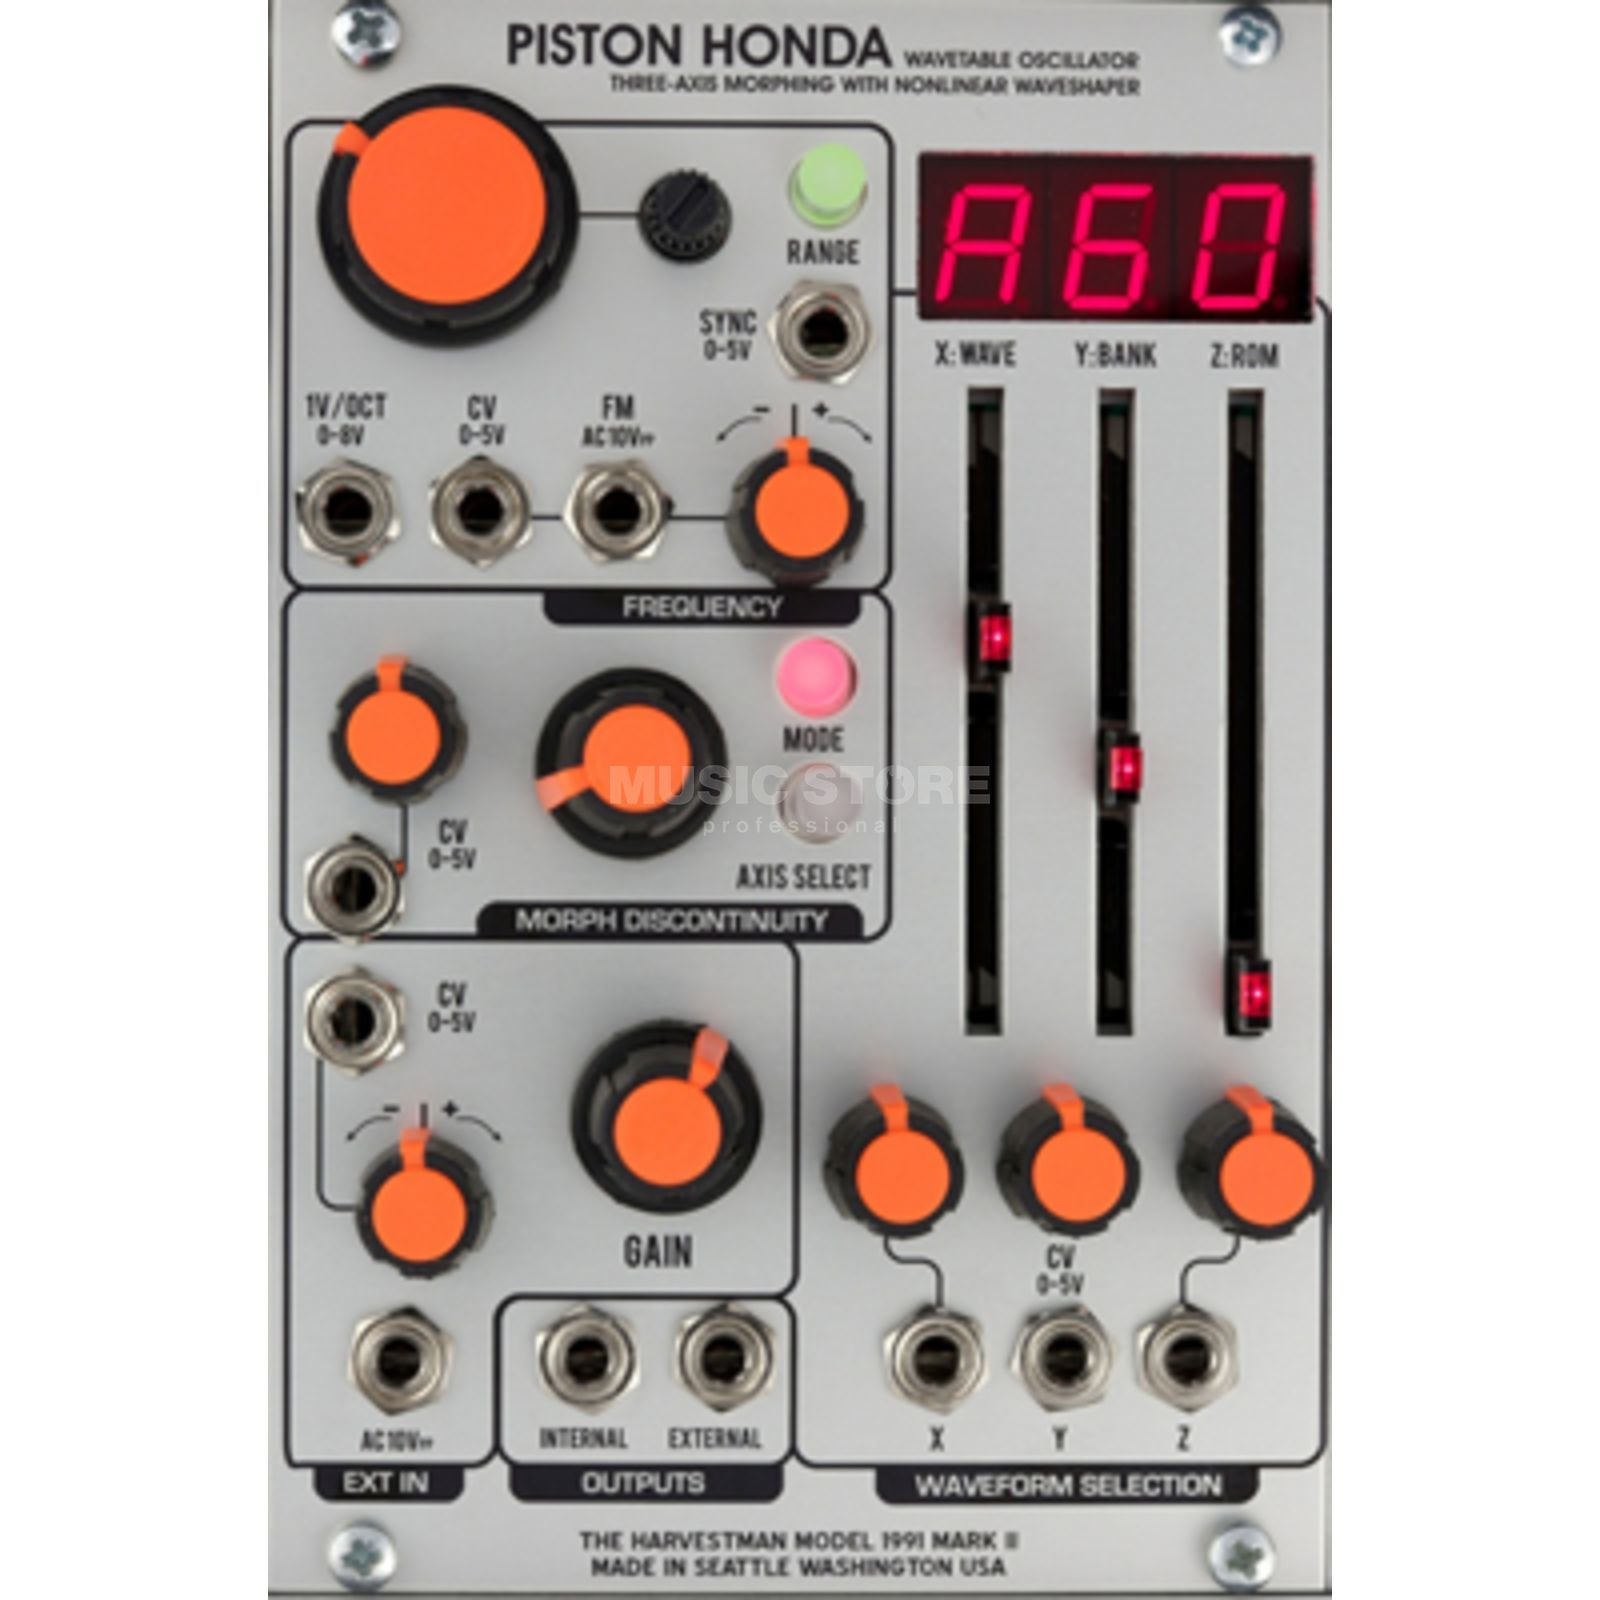 The Harvestman Piston Honda MK2 Wavetable Oscillator Изображение товара